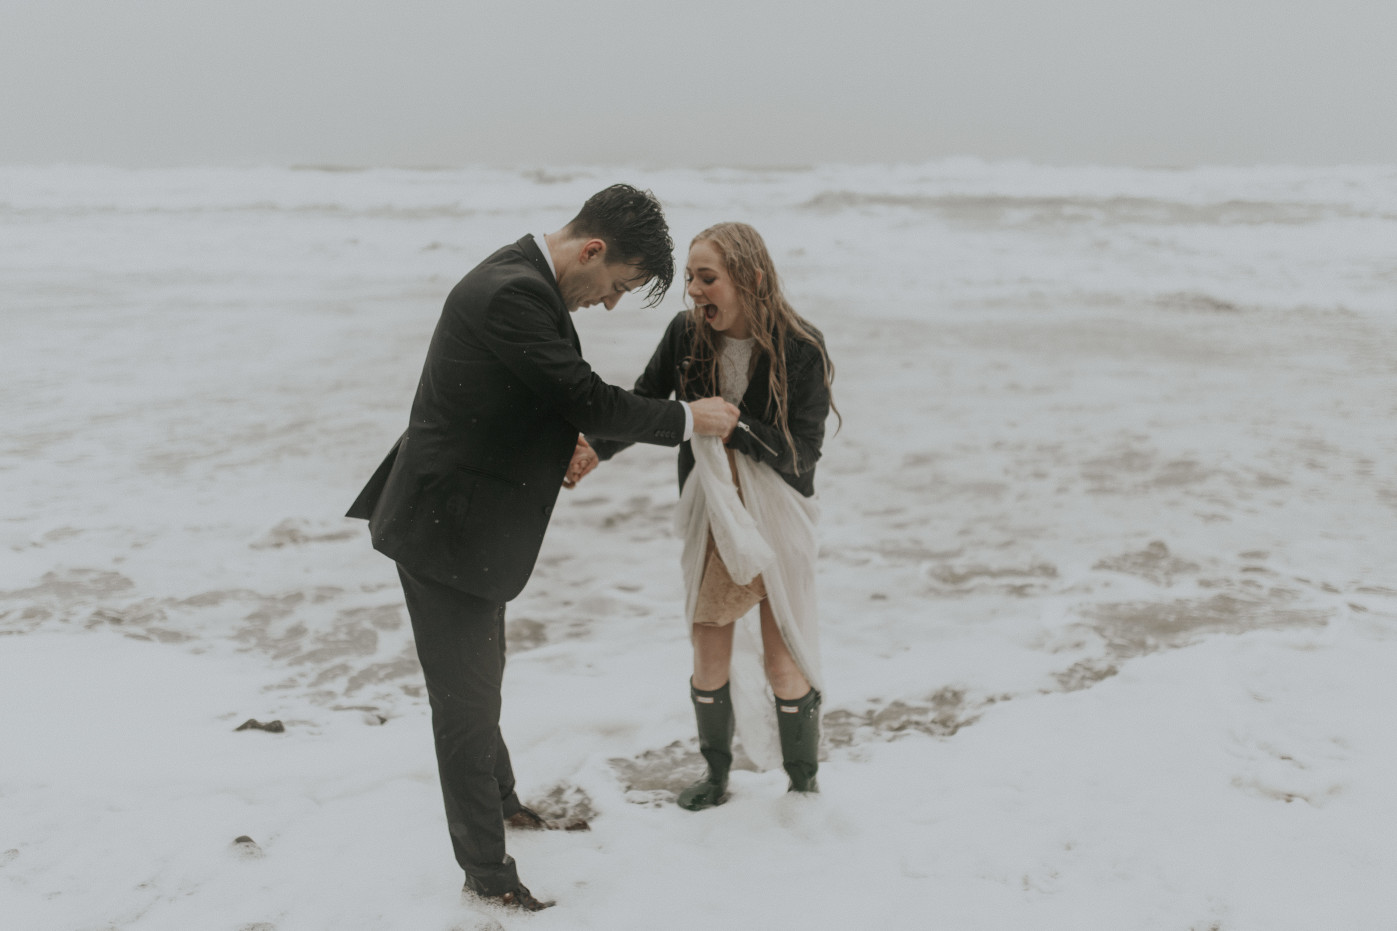 Hannah and Grant get their feet wet at the shore of Hug Point in Cannon Beach, Oregon during their elopement. Wedding photography in Portland Oregon by Sienna Plus Josh.